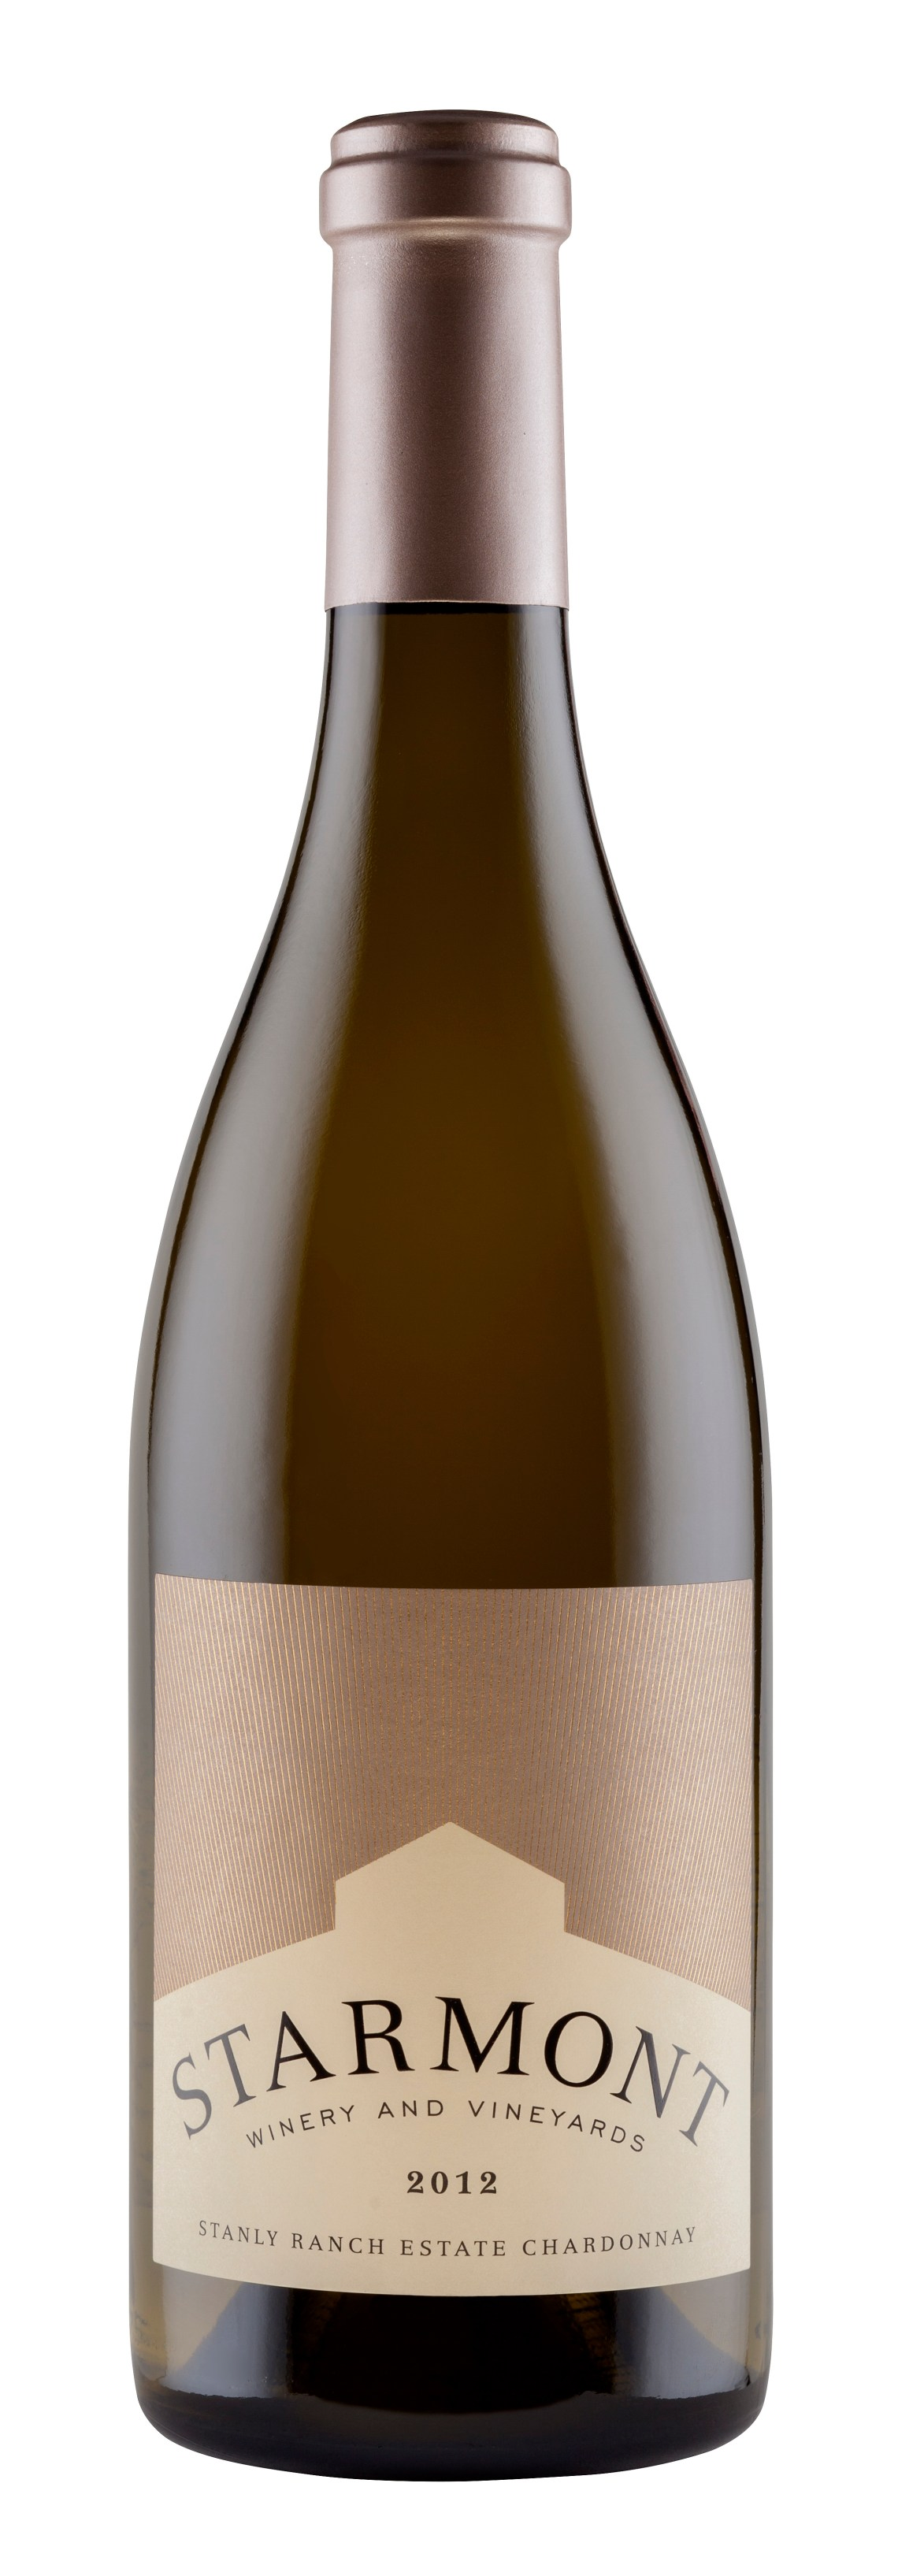 2012 Starmont Chardonnay Stanly Ranch Estate Carneros